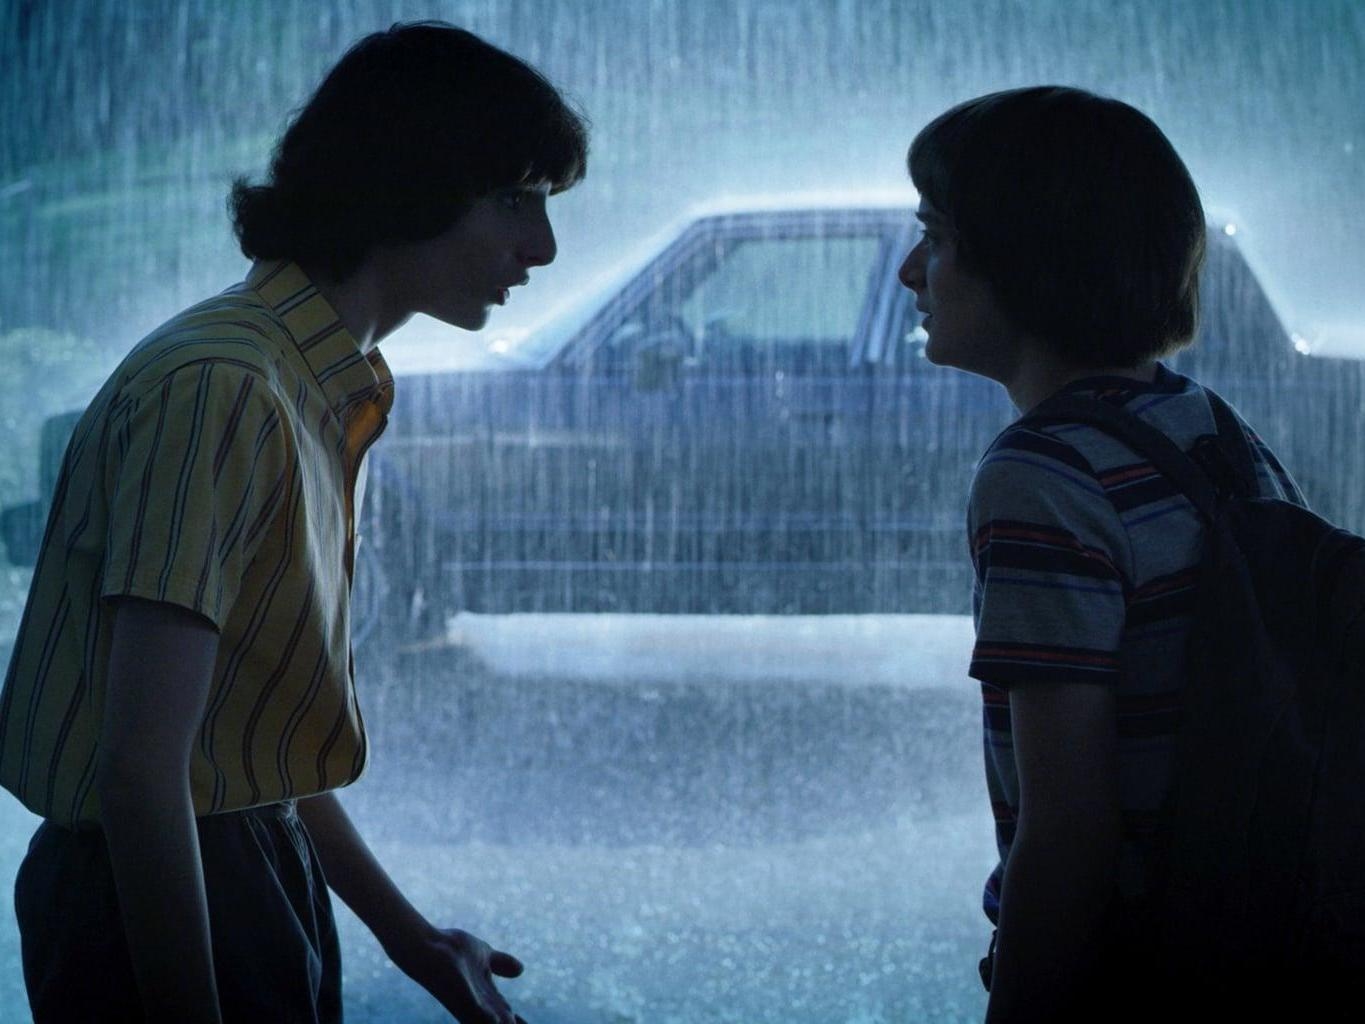 Stranger Things Season 3 Episode 3 Scene Hints At Sexuality